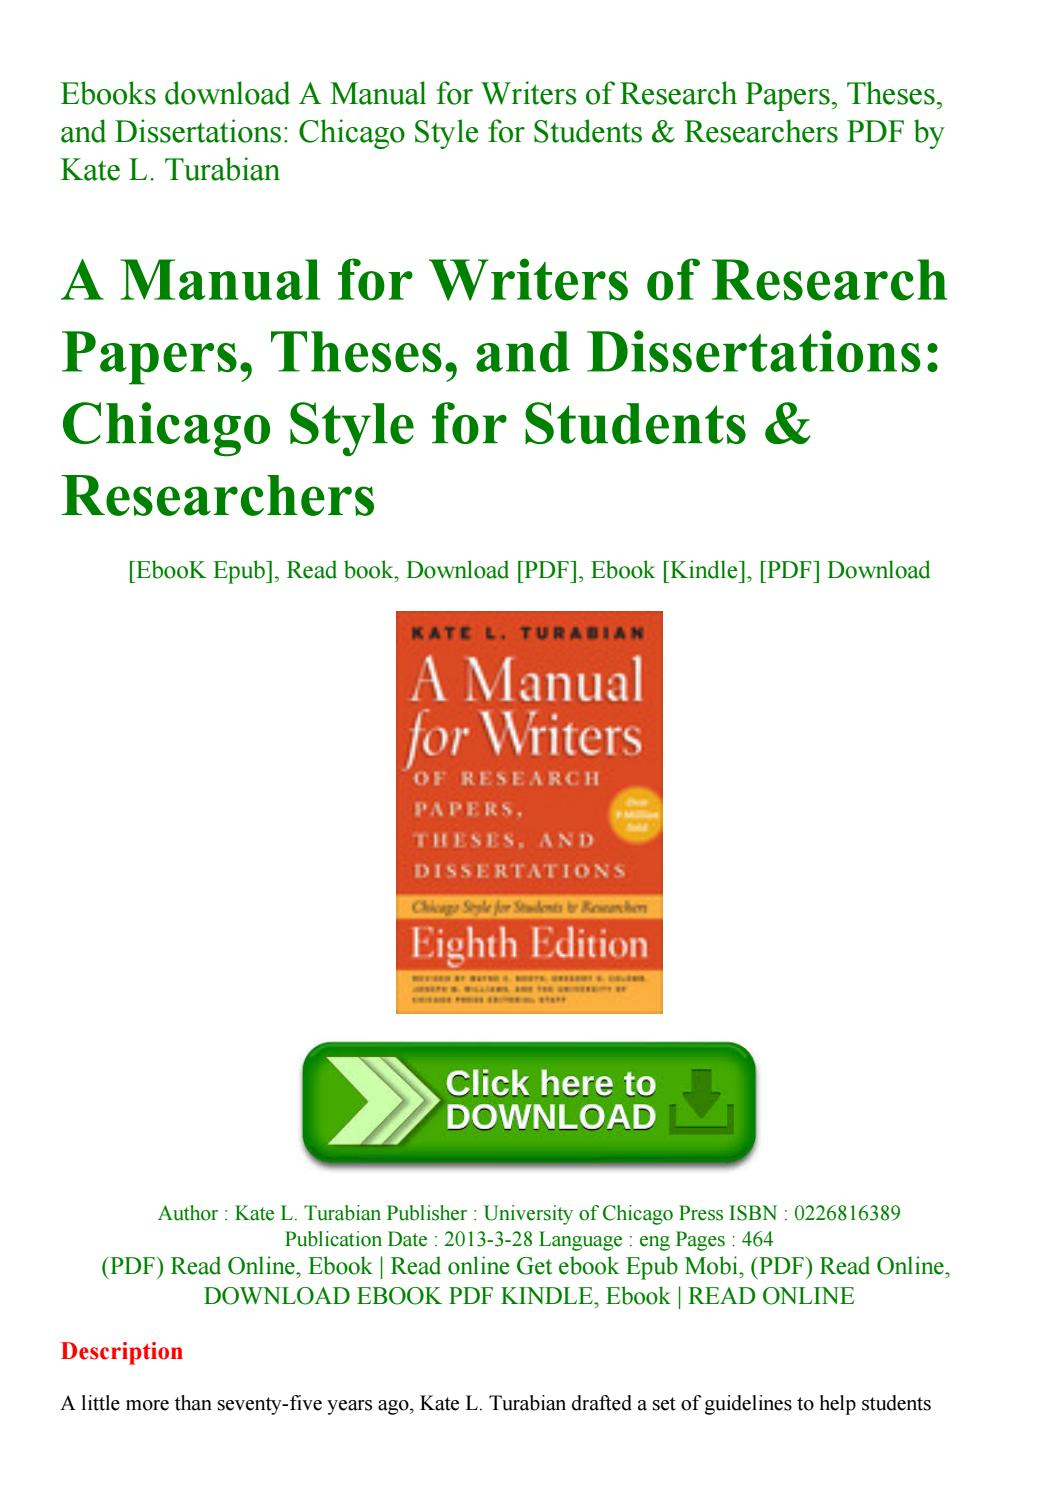 018 Page 1 Research Paper Manual For Writers Of Papers Theses And Sensational A Dissertations 8th Edition Pdf Eighth Full